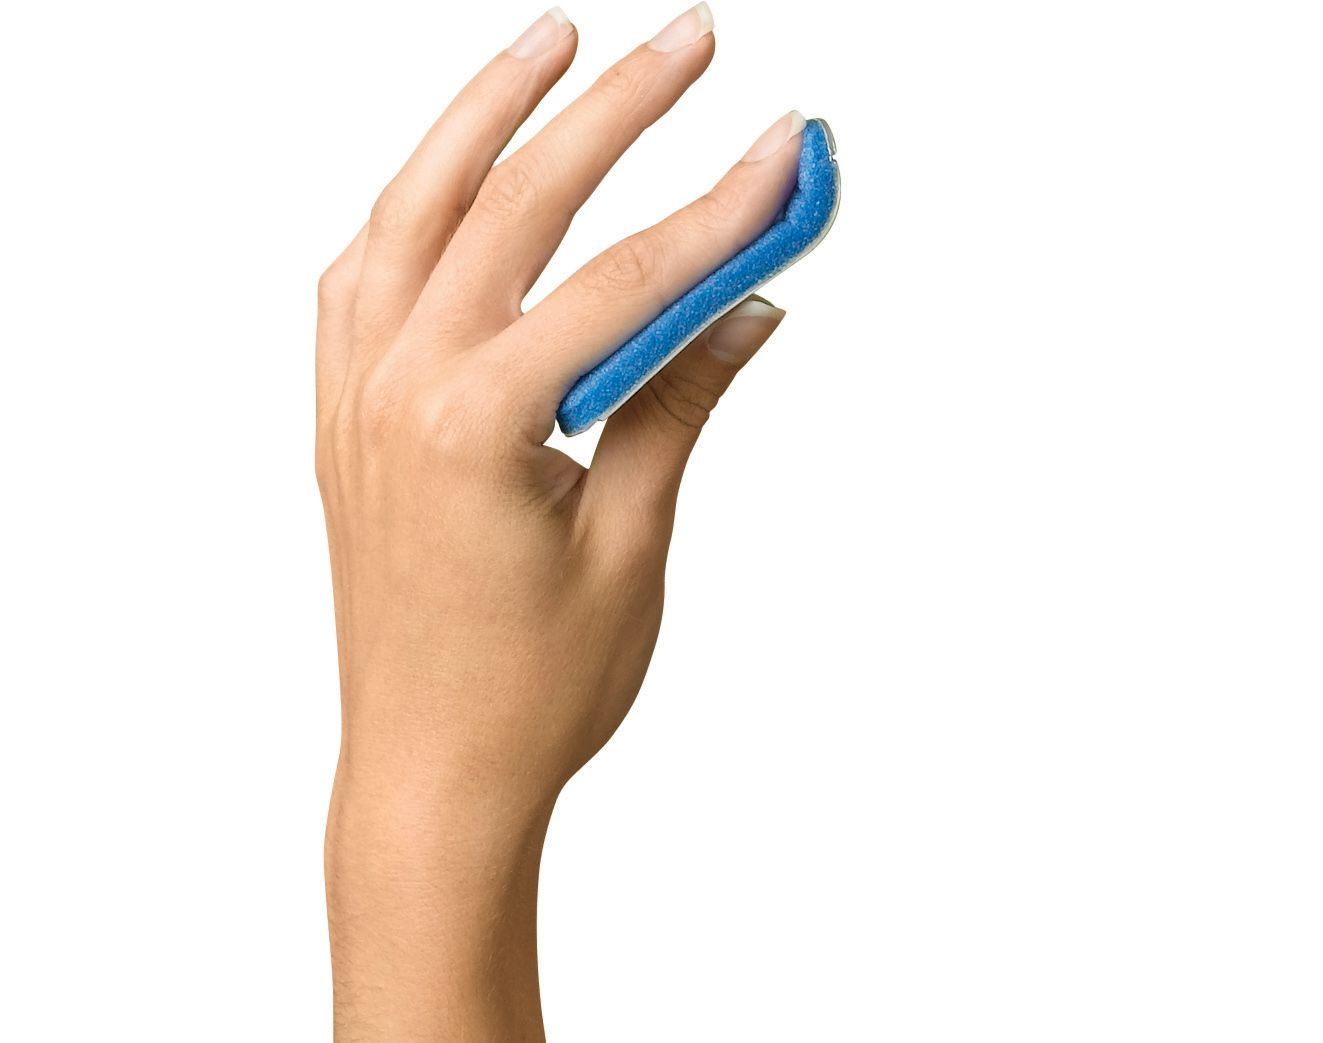 Medline Curved Finger Splint - 1.5